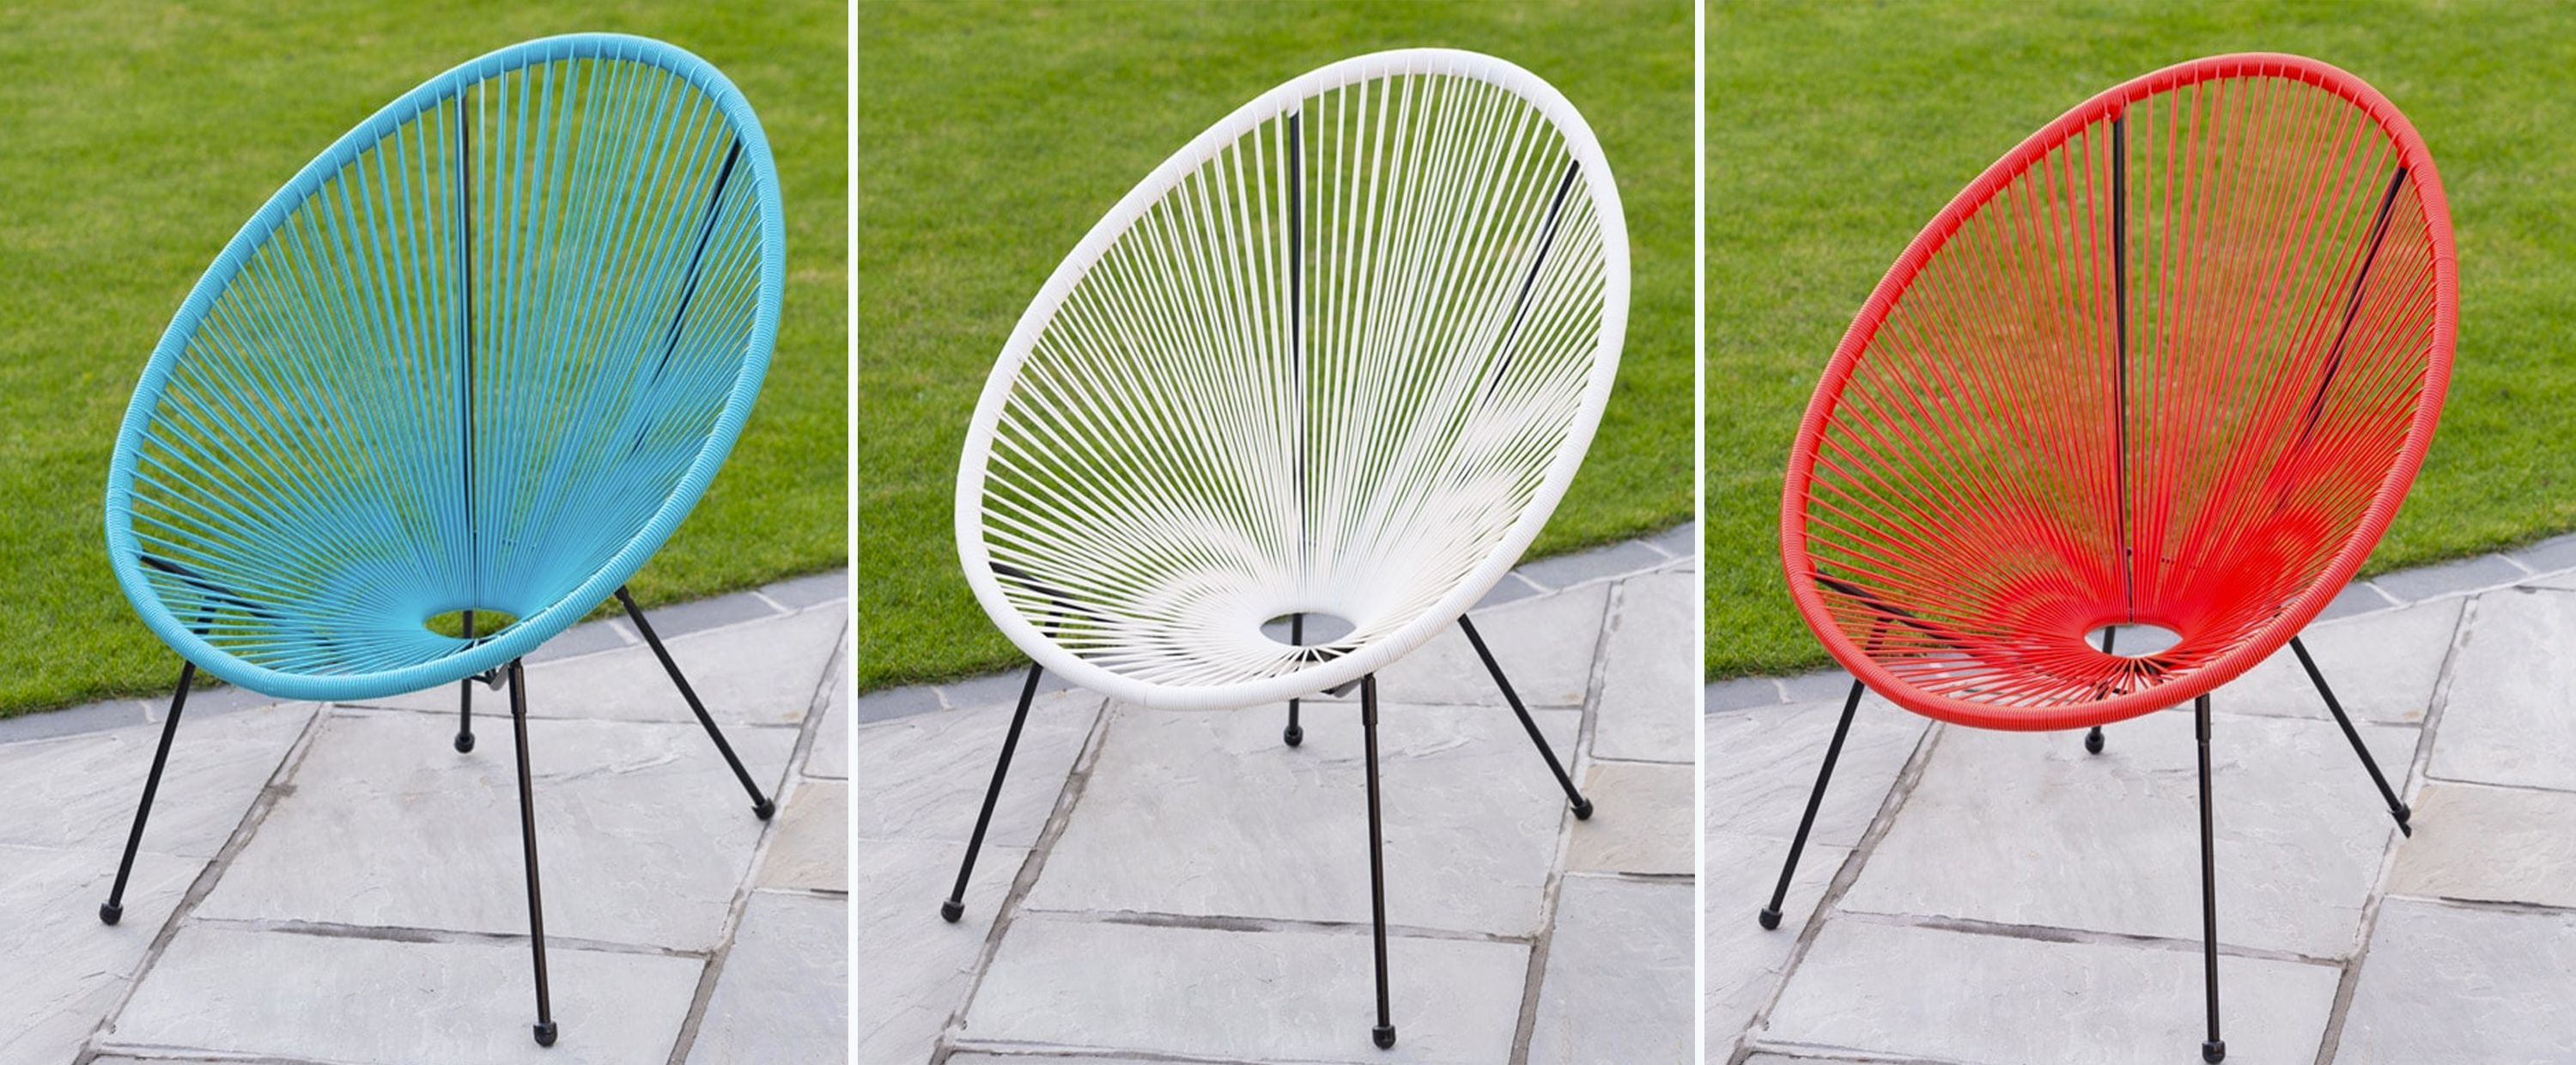 Bs £25 acapulco garden chair is so popular on instagram cheap garden chairs for summer